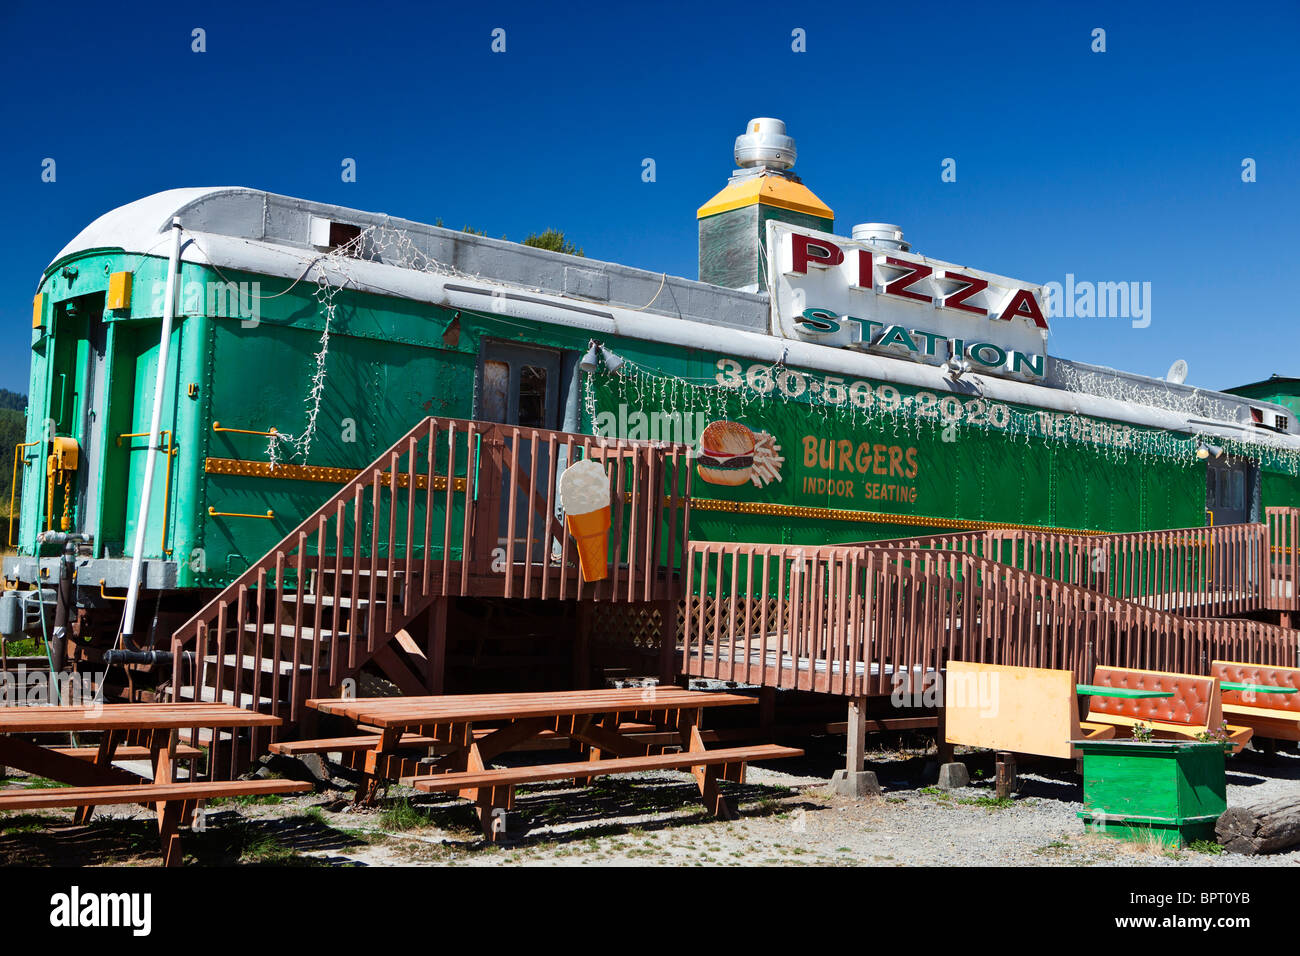 Pizza and burger restaurant made out of converted railroad car, Elbe, Washington, United States of America - Stock Image